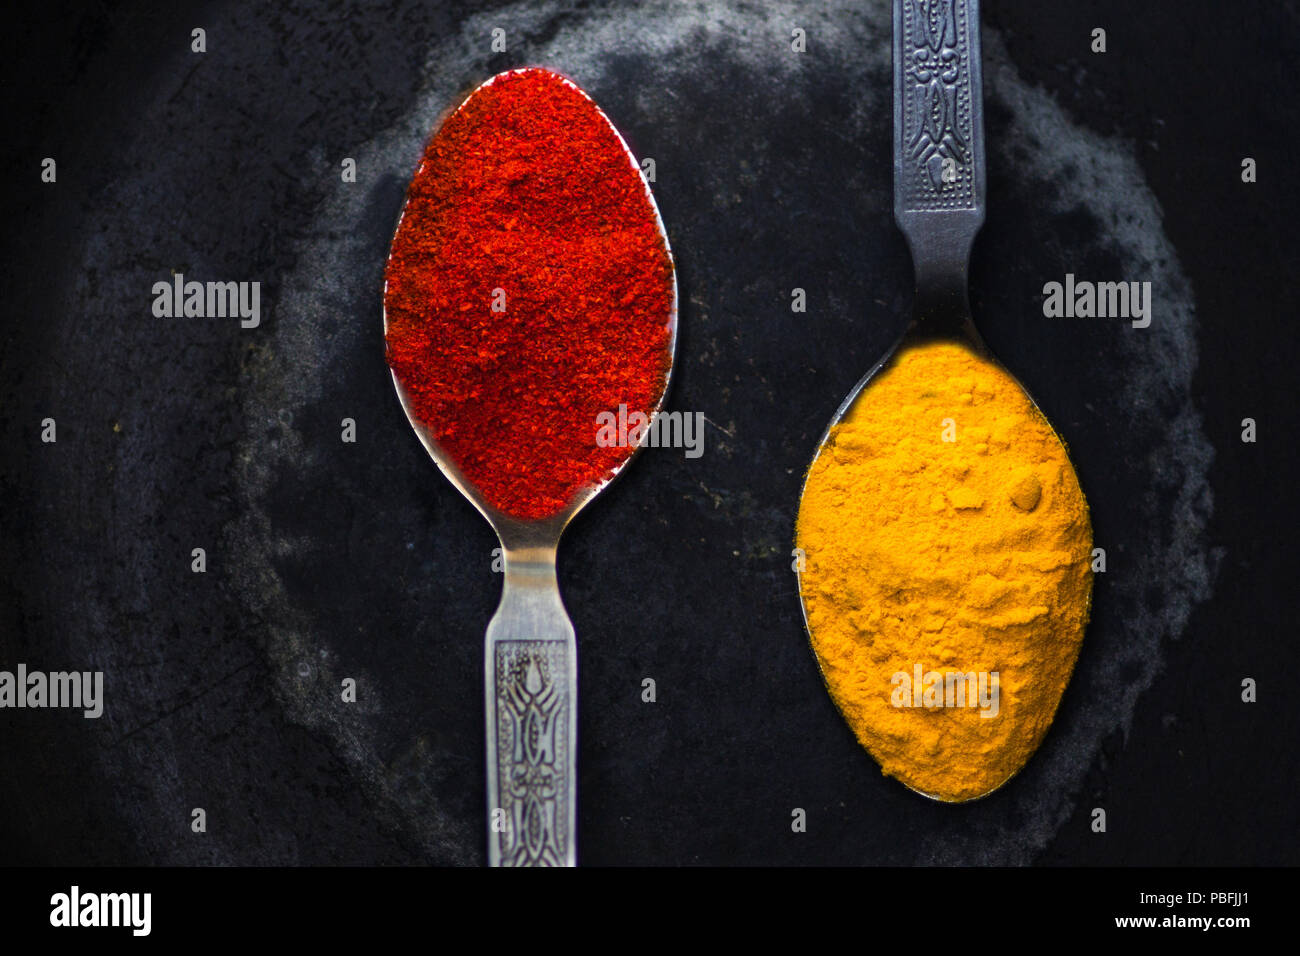 Two spoonfuls of Indian spices. These are key ingredients of Indian food across the entire subcontinent. These are called Turmeric and red Chilly. - Stock Image